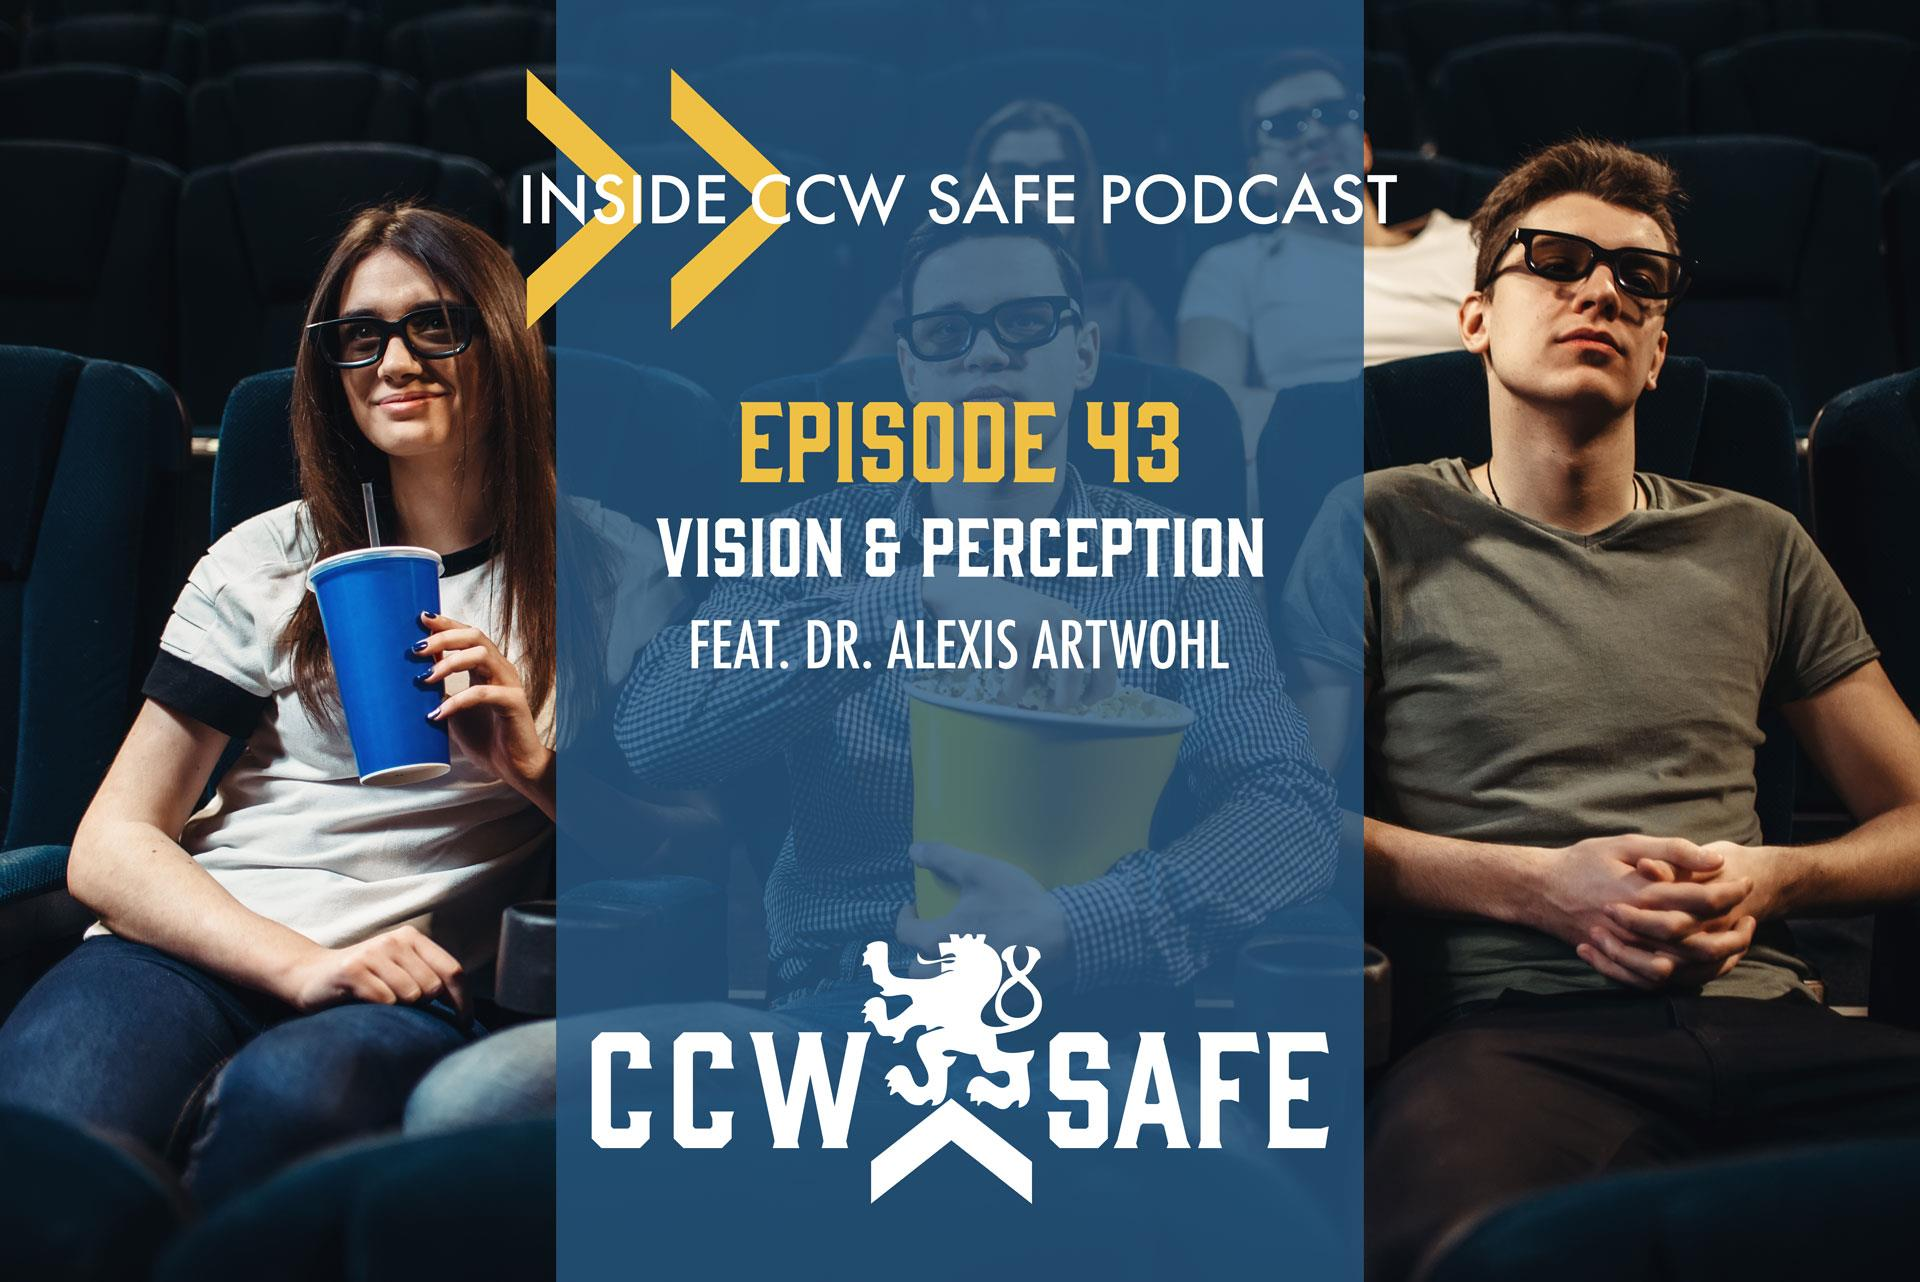 Inside CCW Safe Podcast-Episode 43: Vision and Perception feat. Dr. Alexis Artwohl